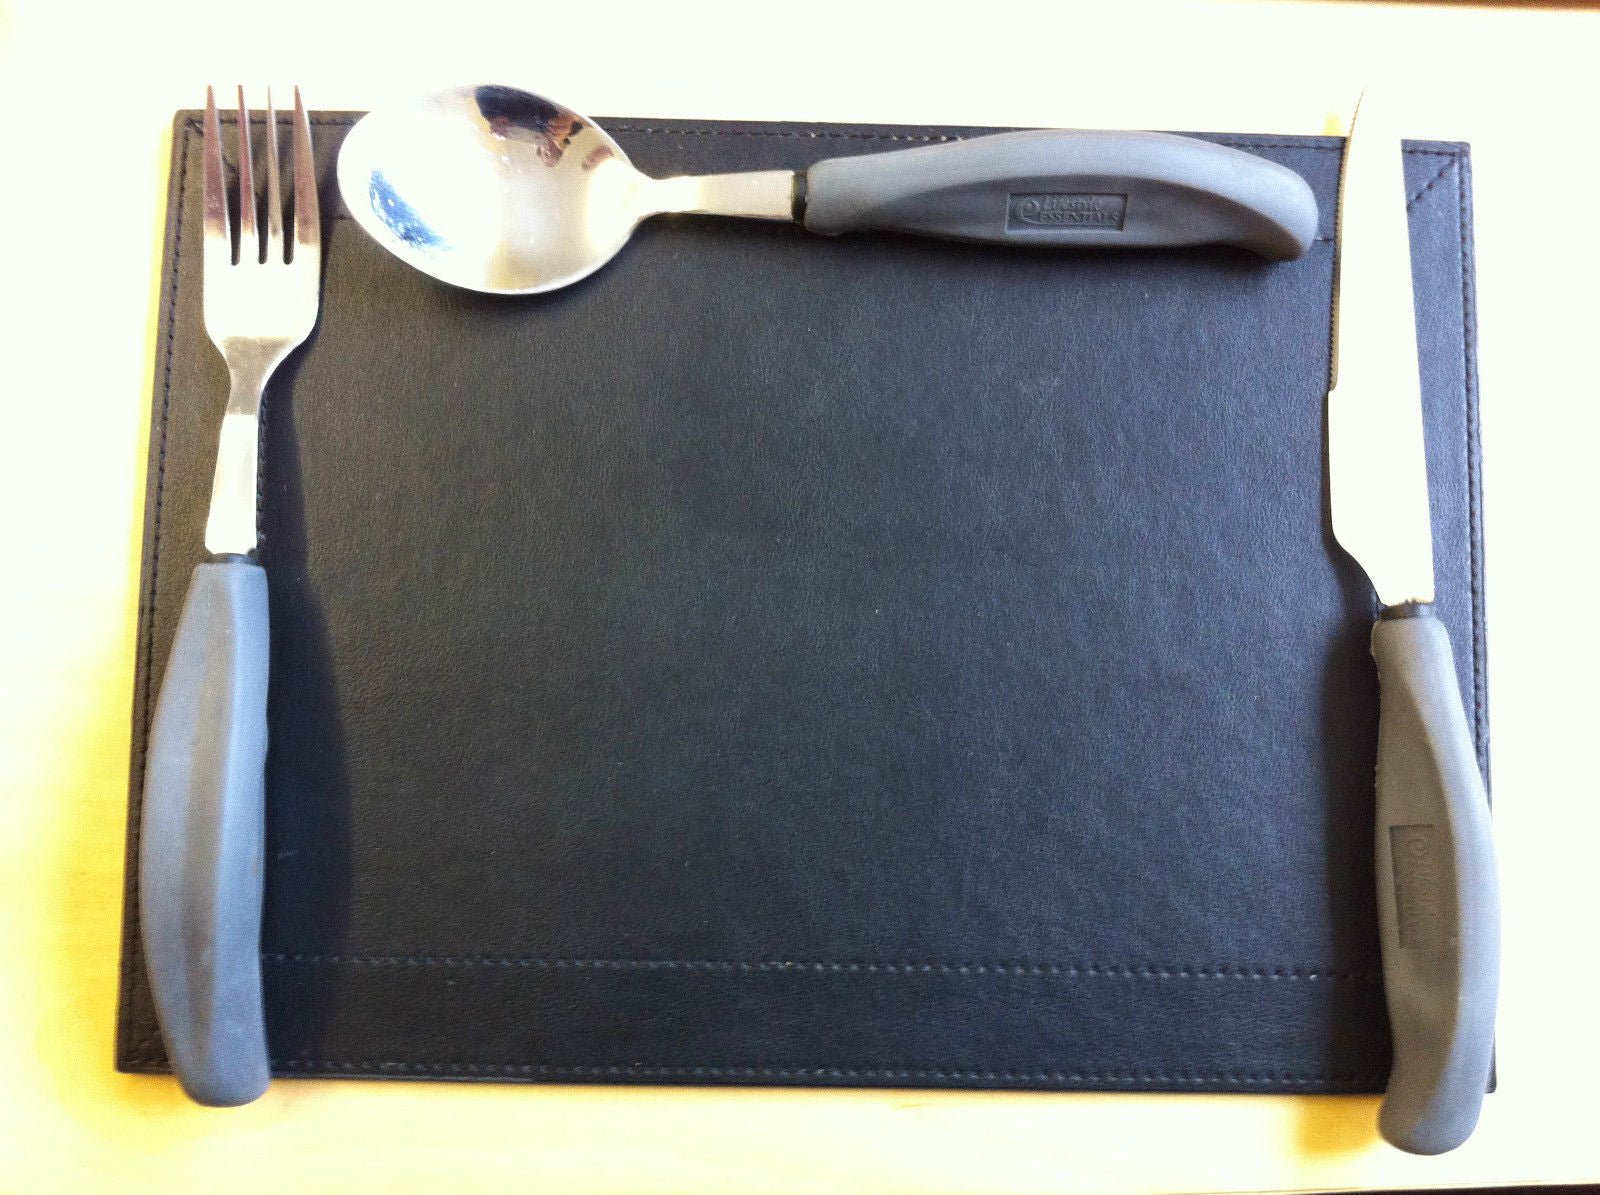 Disabled Cutlery Set Easy Grip Large Handle Knife Fork Spoon Lifestyle Essential Eating Utensil